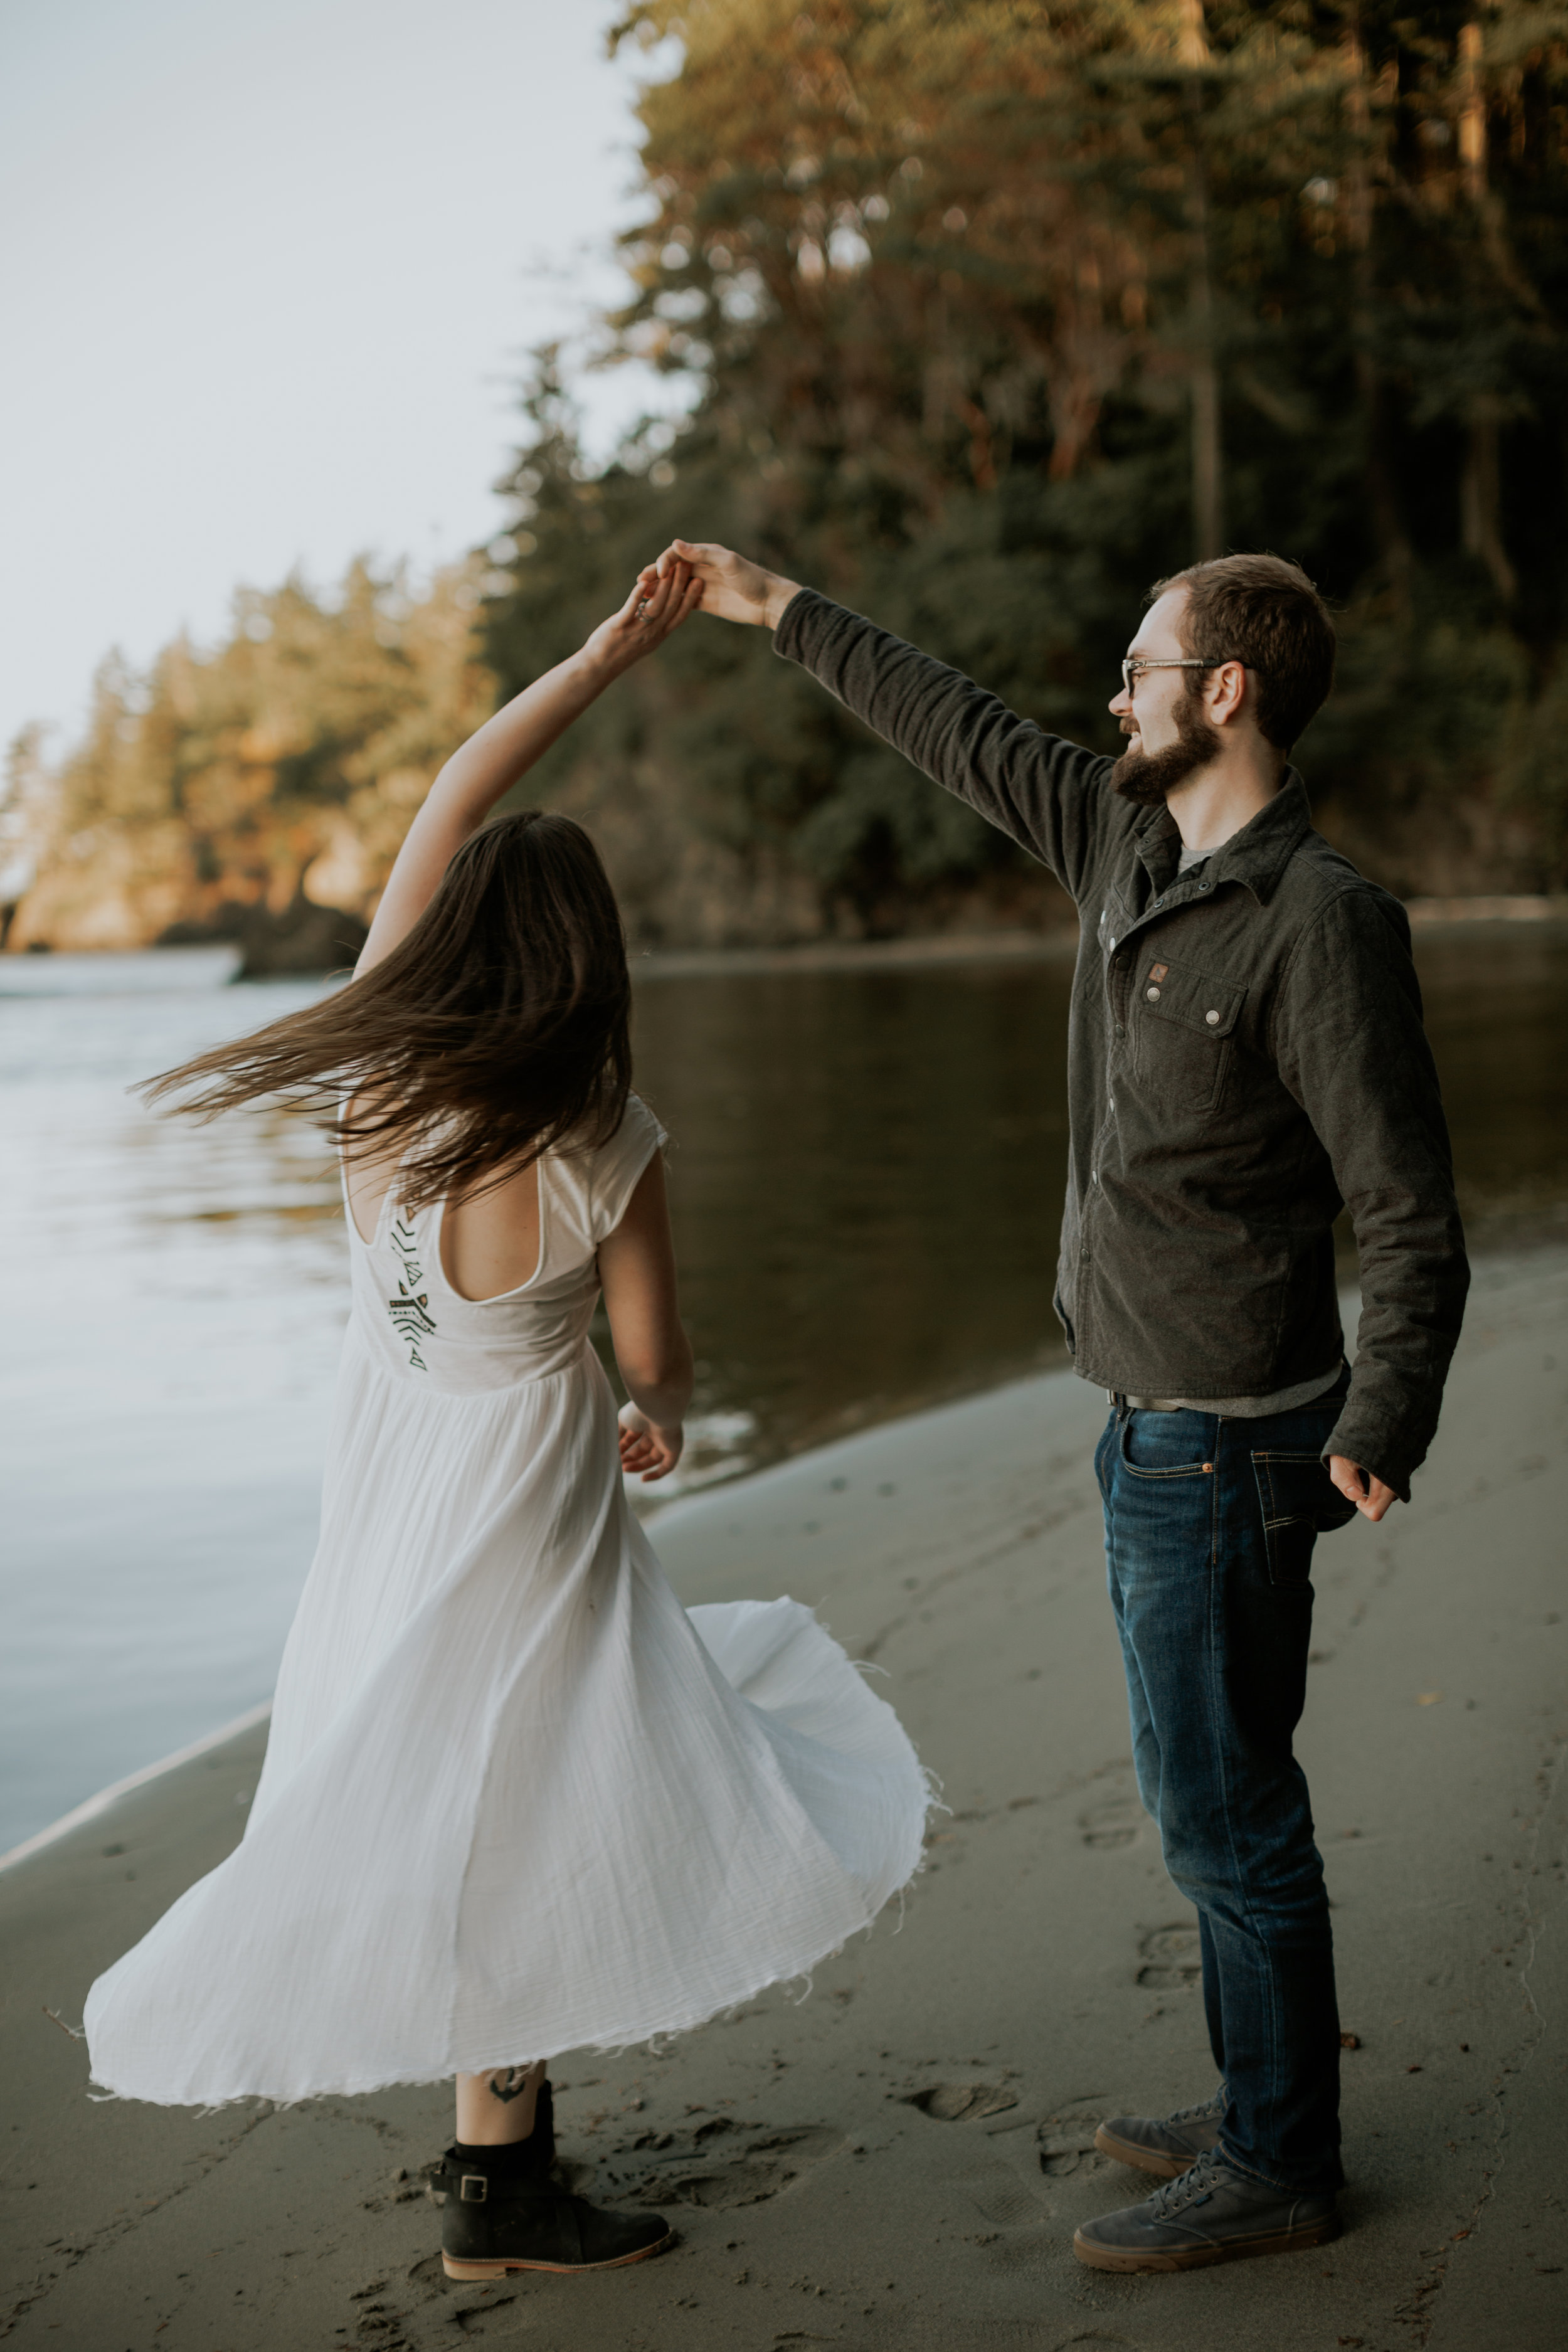 PNW-Olympic National Park-Salt Creek-engagement-Portrait-Port-Angeles-Washington-elopement-photographer-kayla-dawn-photography-kayladawnphoto-wedding-anniversary-photoshoot-olympic-peninsula-203.jpg